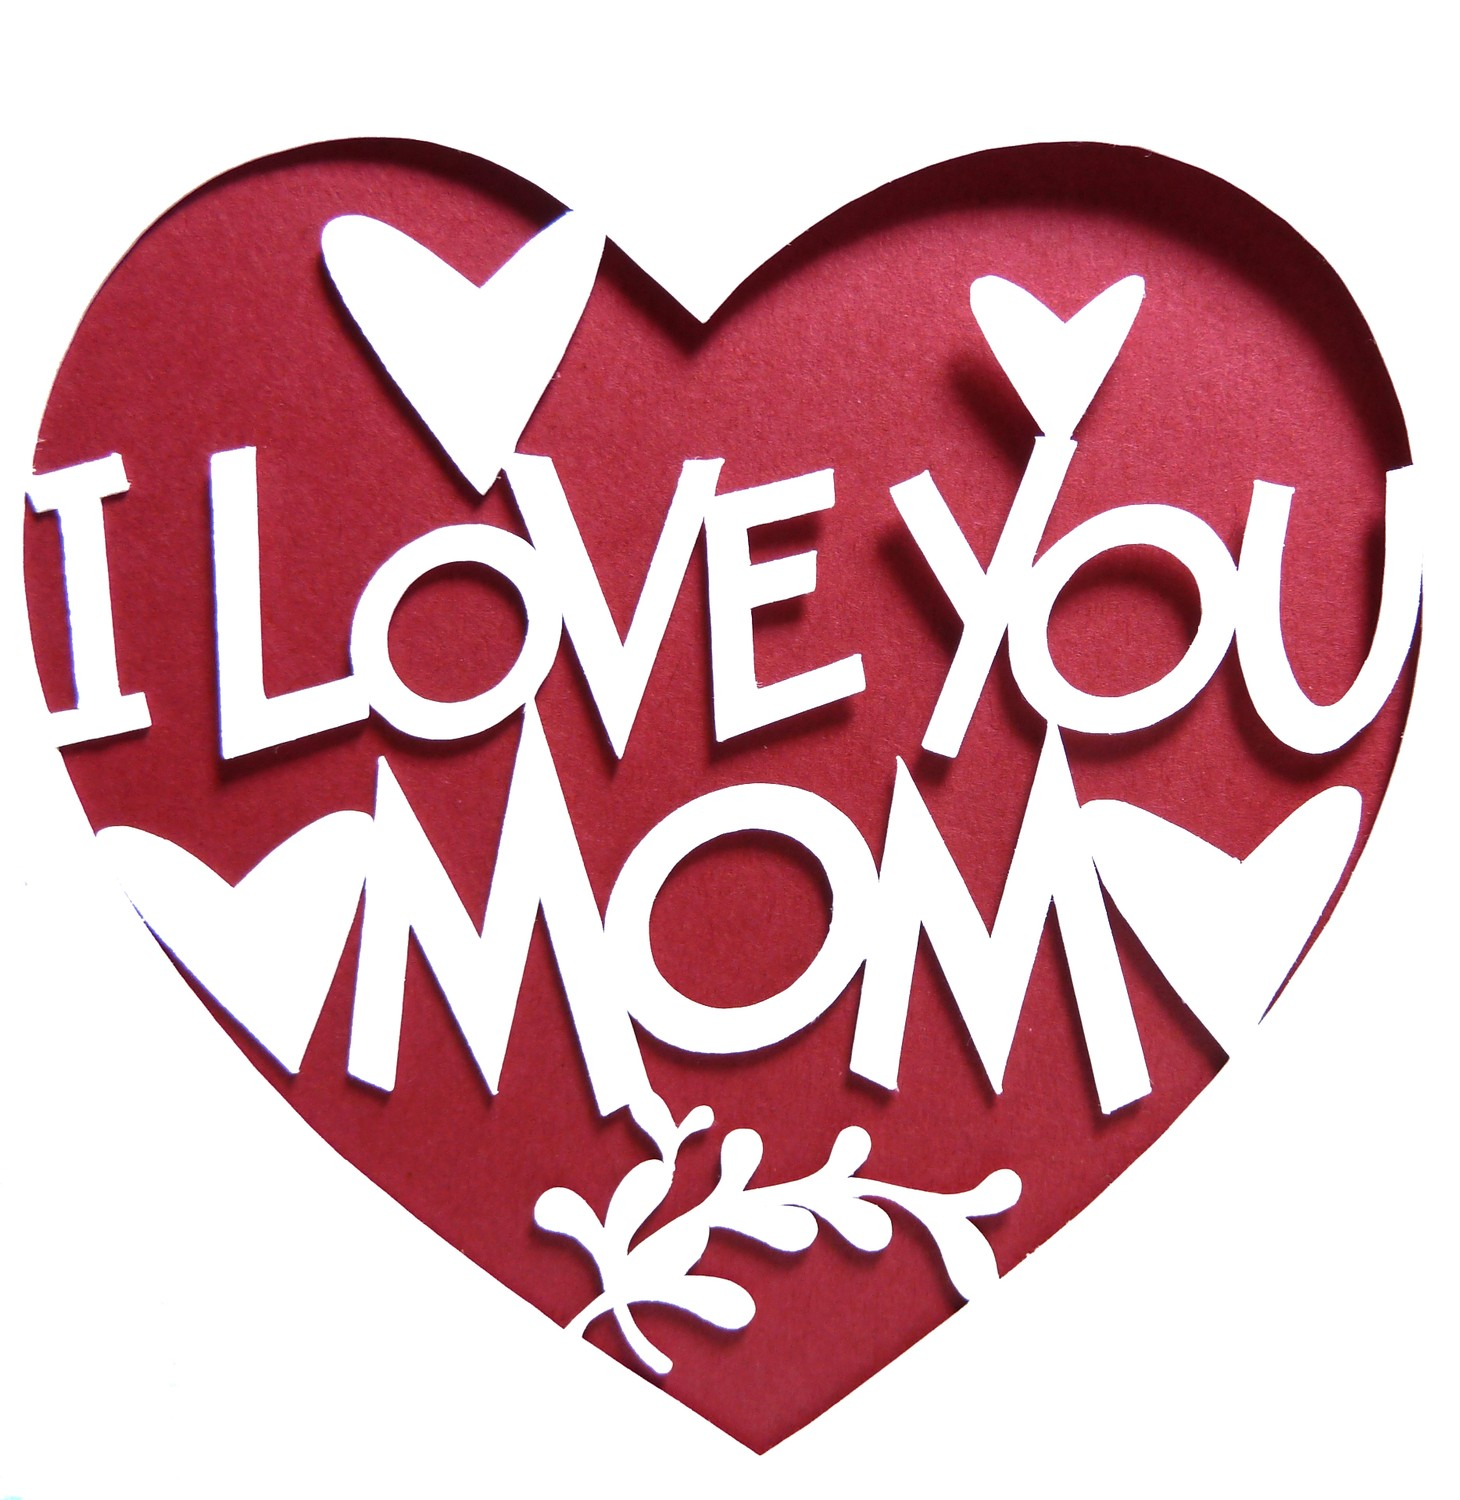 Quotes About How Much I Love My Mom: منتديات التعليم نت